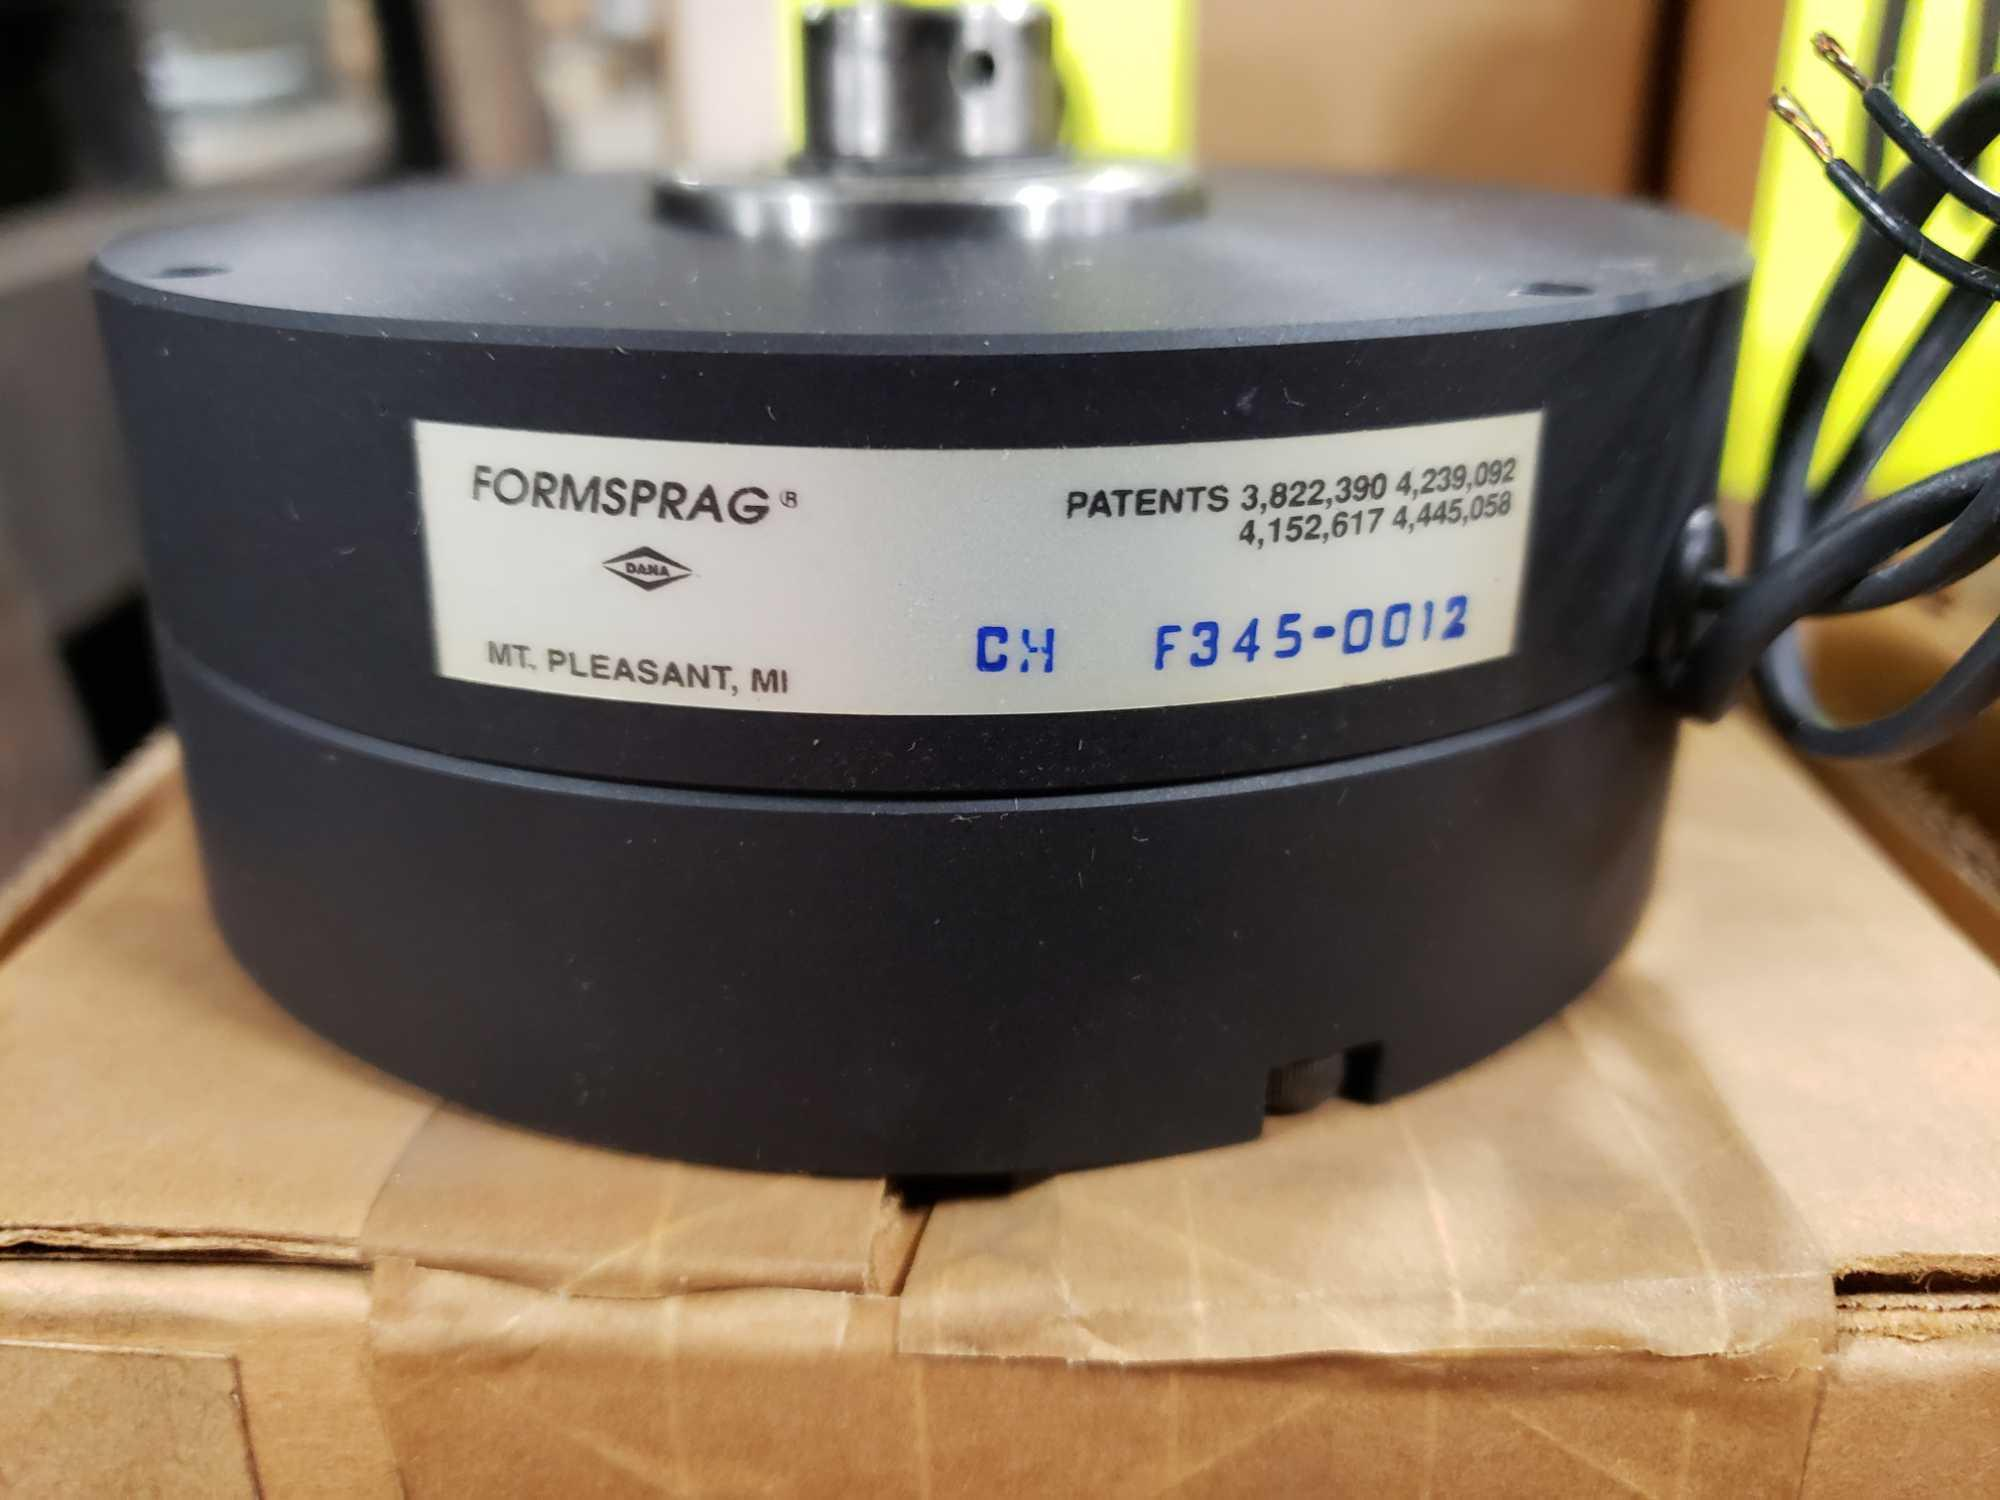 Formsprag Magpowr sofstep model PSB-70/90V magnetic partical clutch brake. New in box. - Image 2 of 2